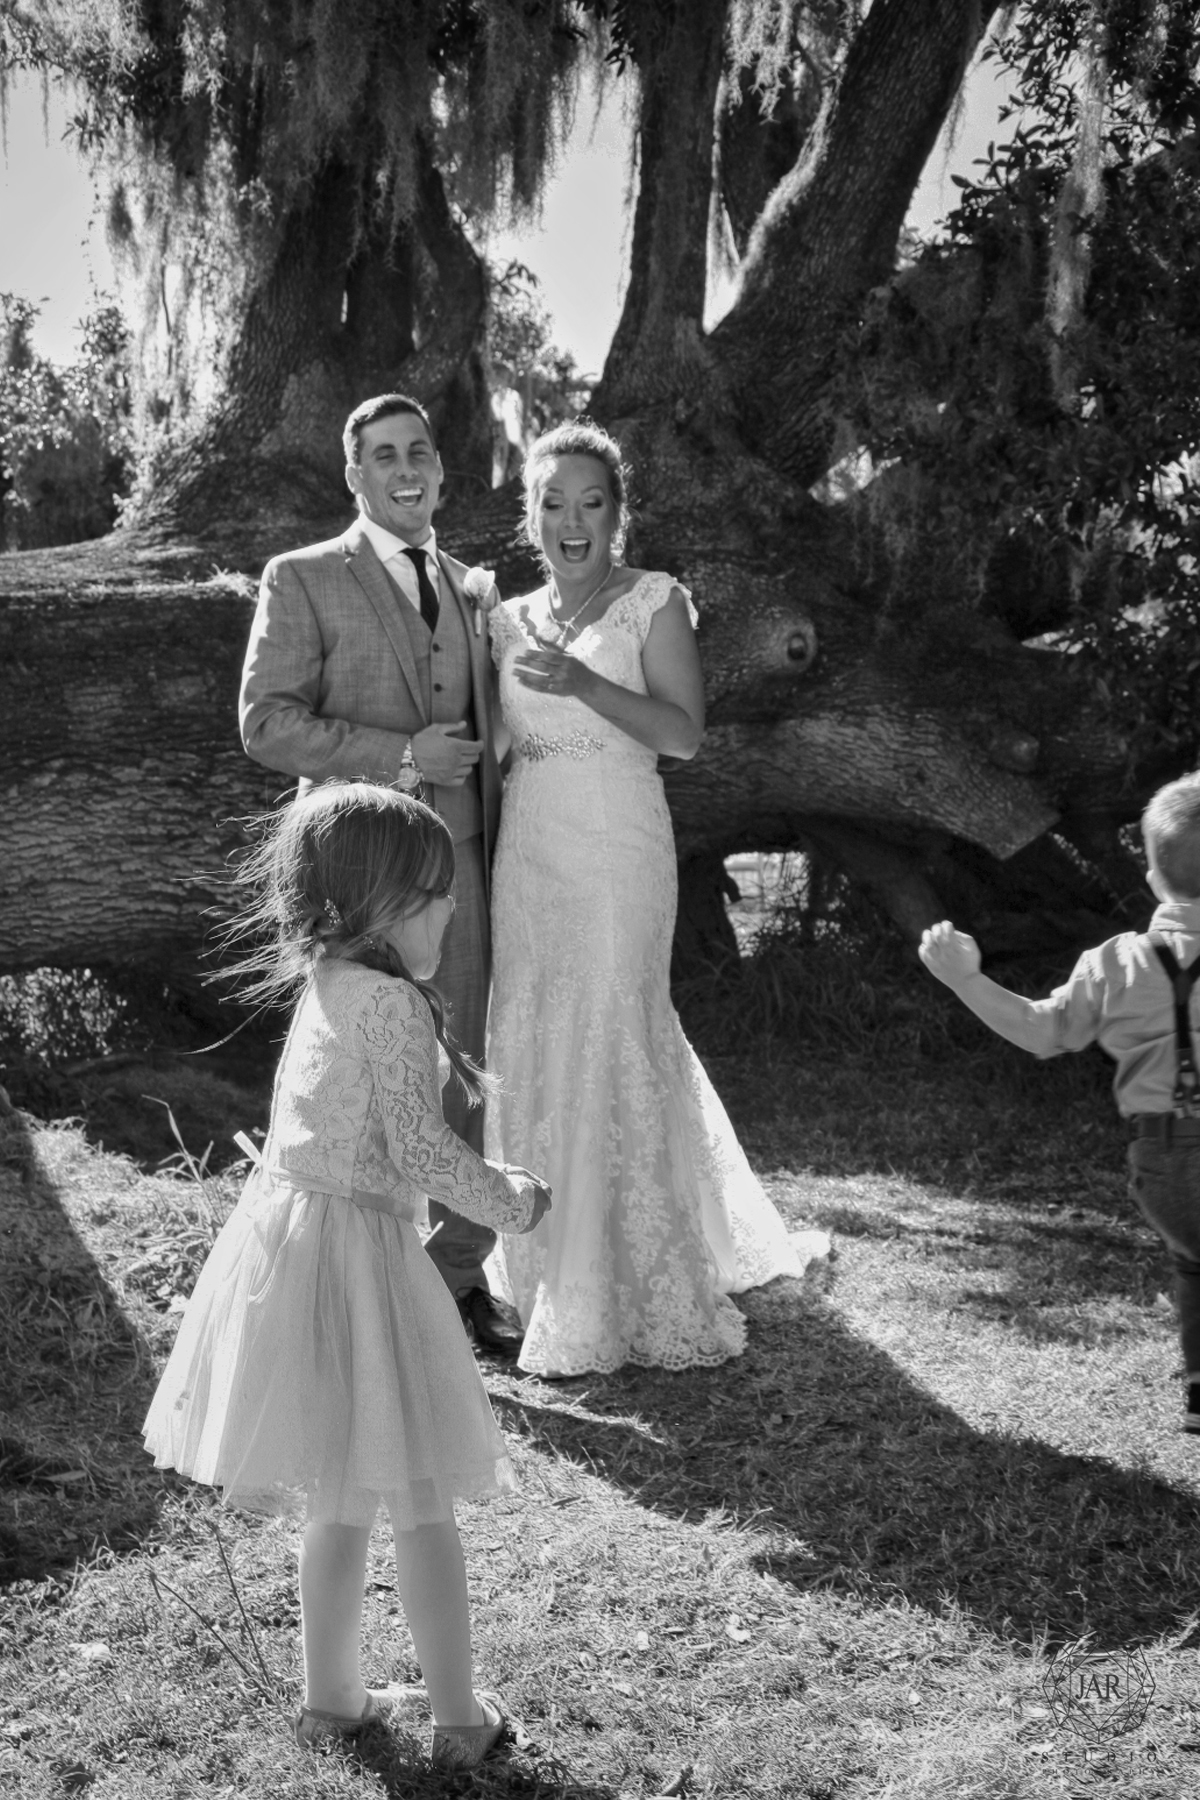 19-kids-wedding-tree-park-orlando-funny-jarstudio.JPG